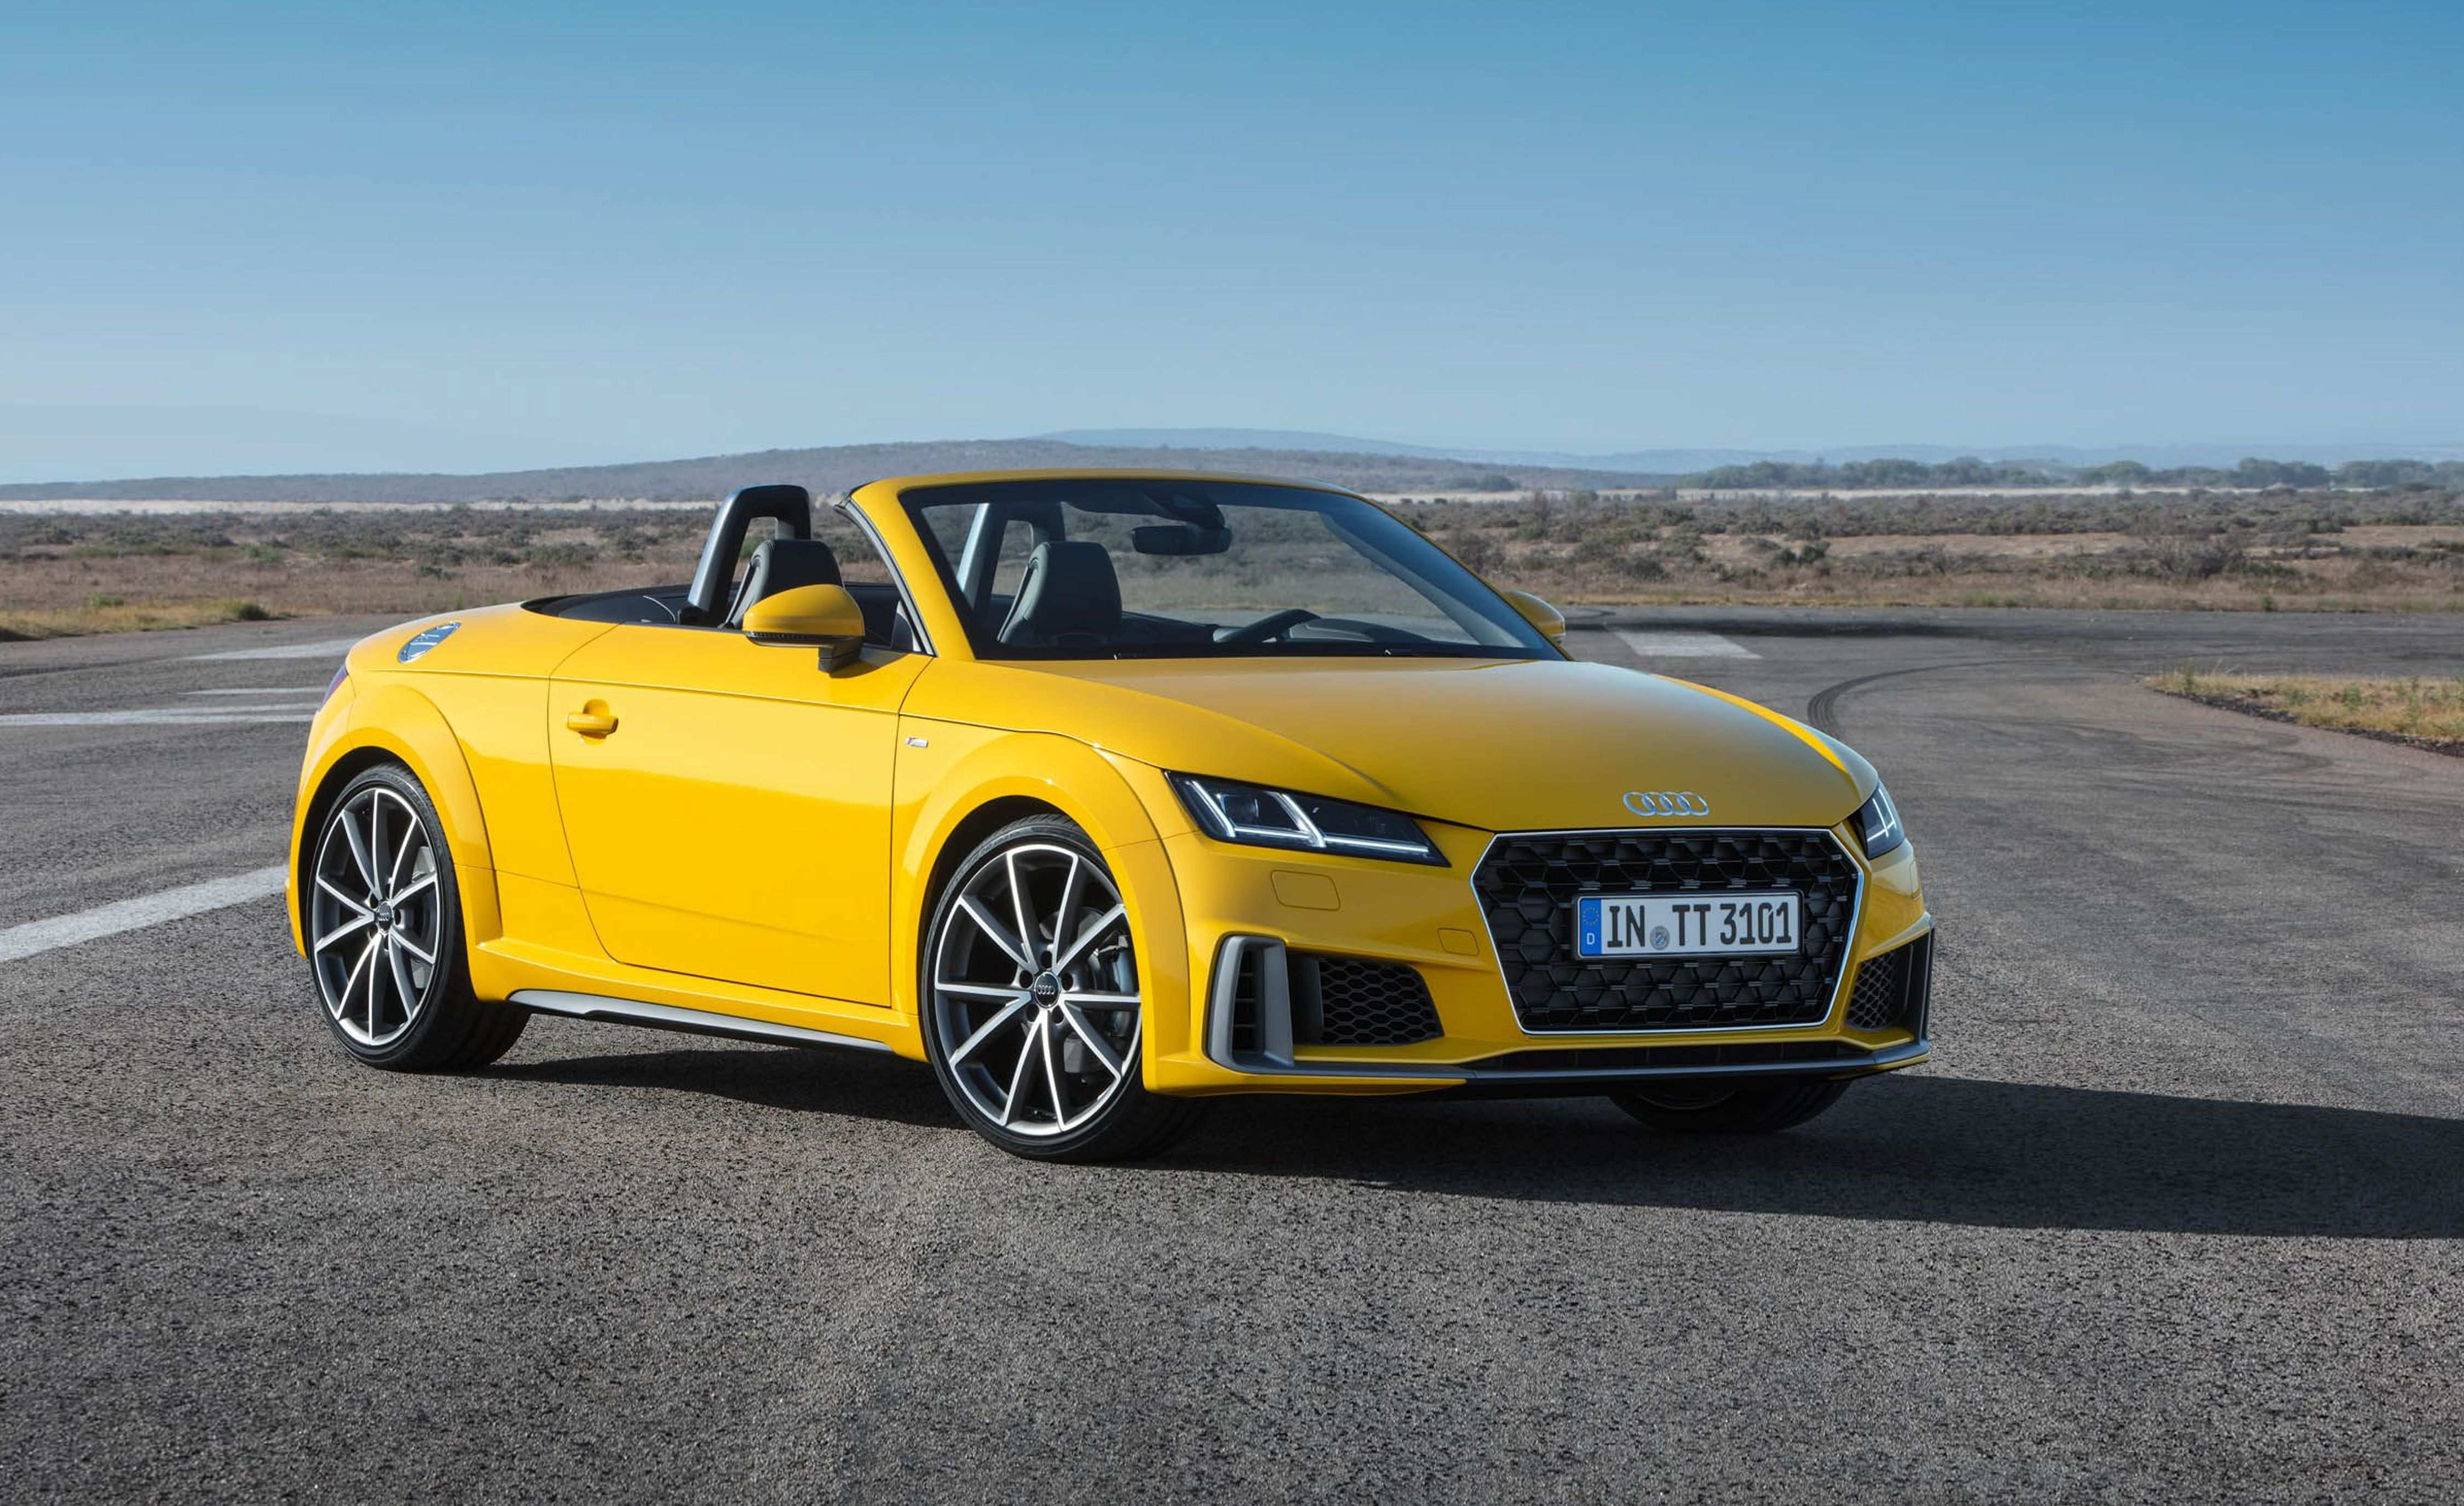 47 New The Audi Tt Convertible 2019 Concept Specs with The Audi Tt Convertible 2019 Concept